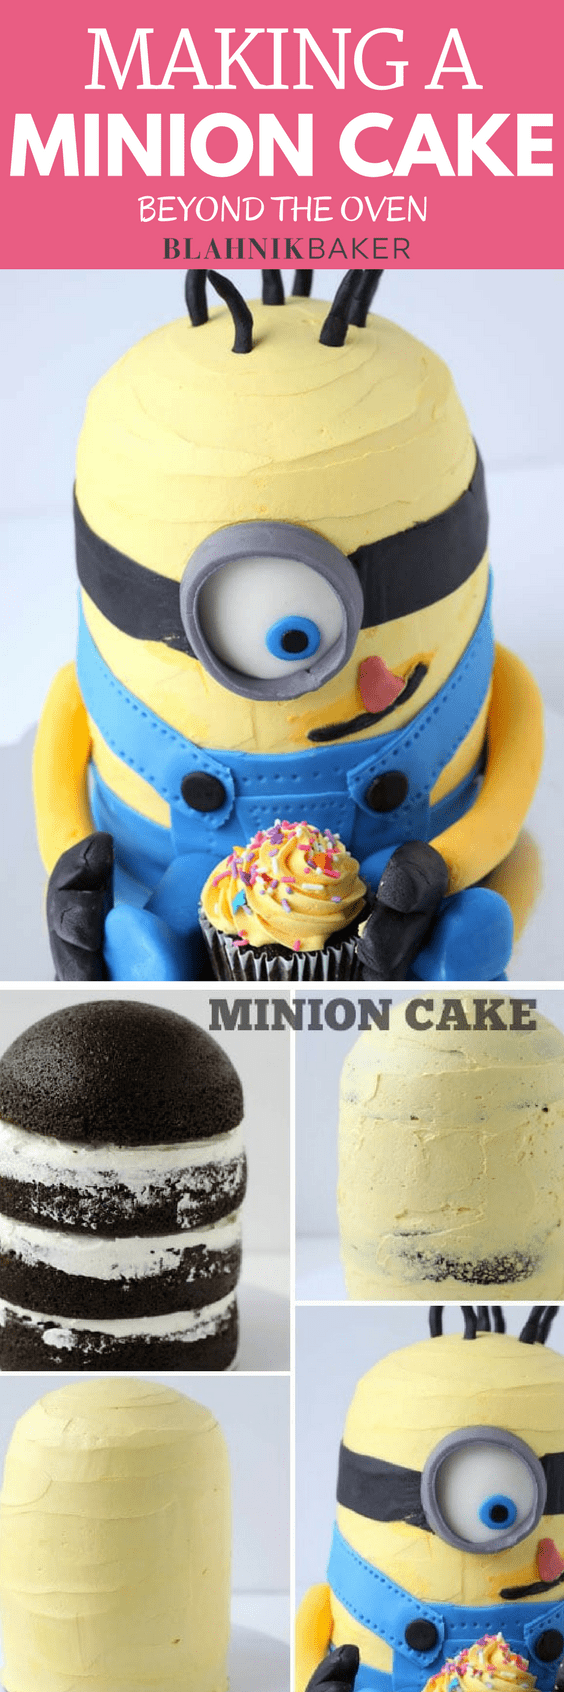 Step by step tutorial on making a minion cake uses chocolate cake step by step tutorial on making a minion cake uses chocolate cake recipe baditri Image collections